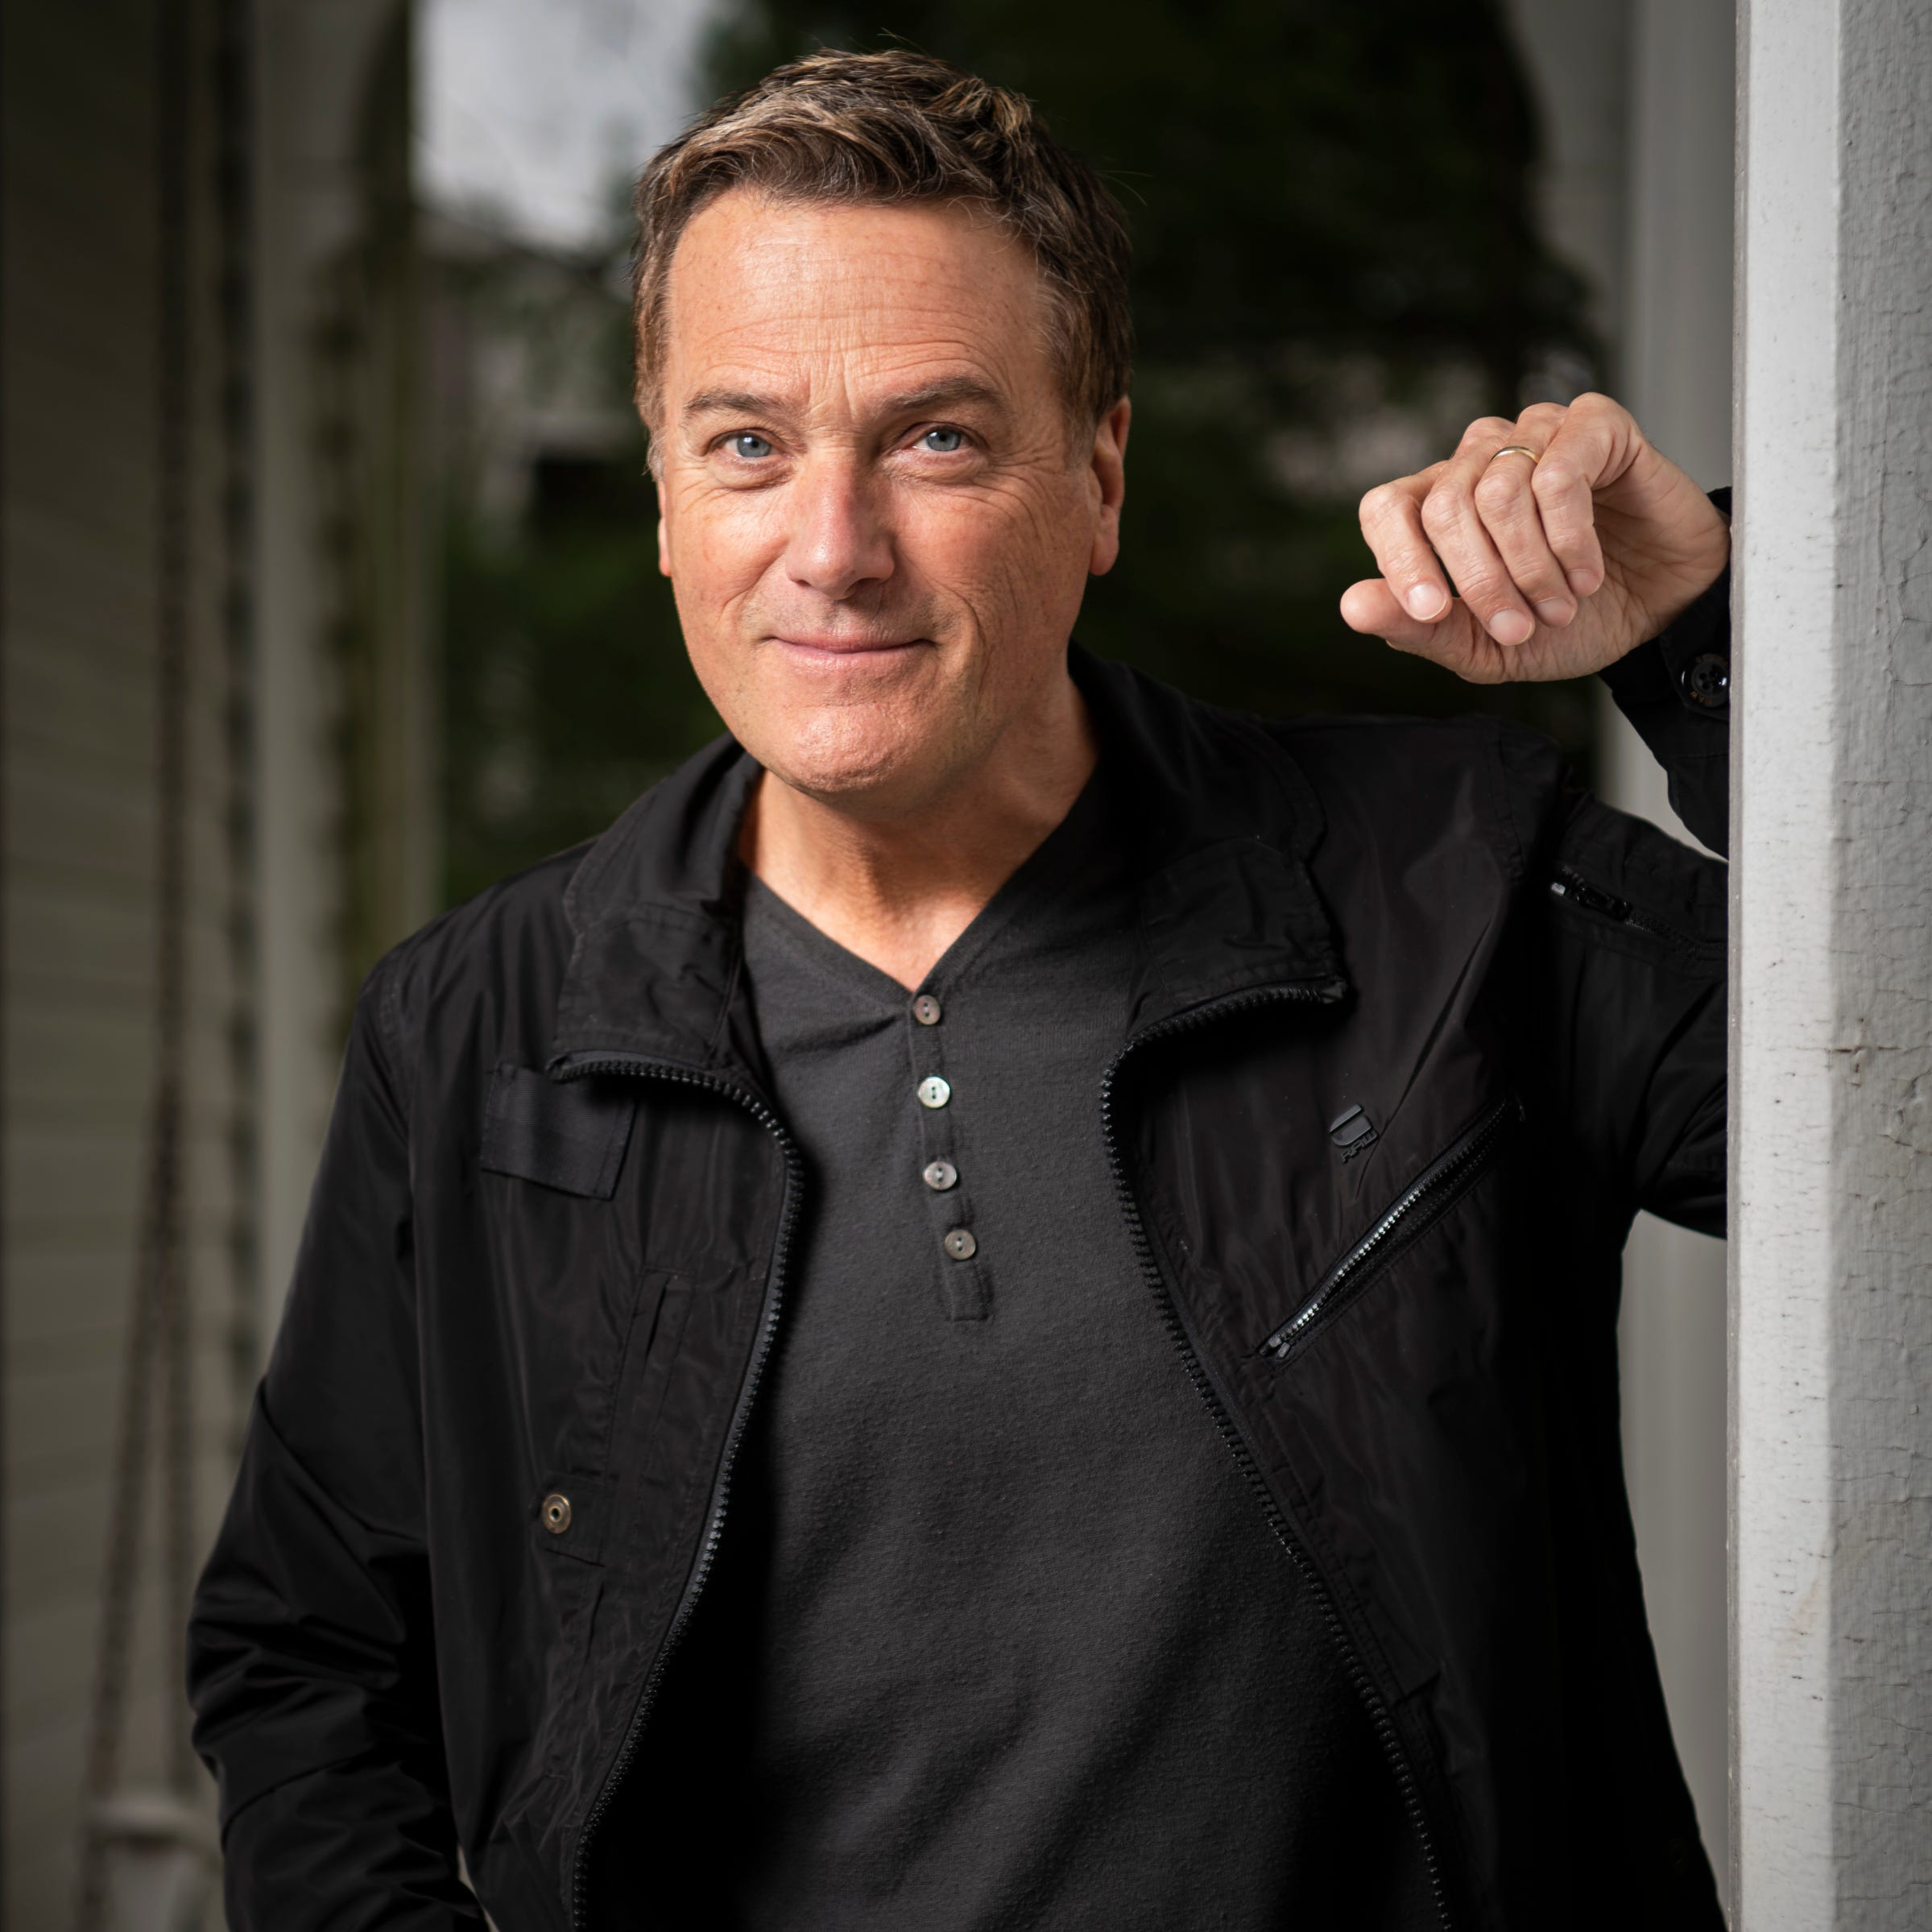 Michael W. Smith firsts:  A $50 gig at Commodore Lounge, a baptism at 10 and playing a Beatles song by ear at 9